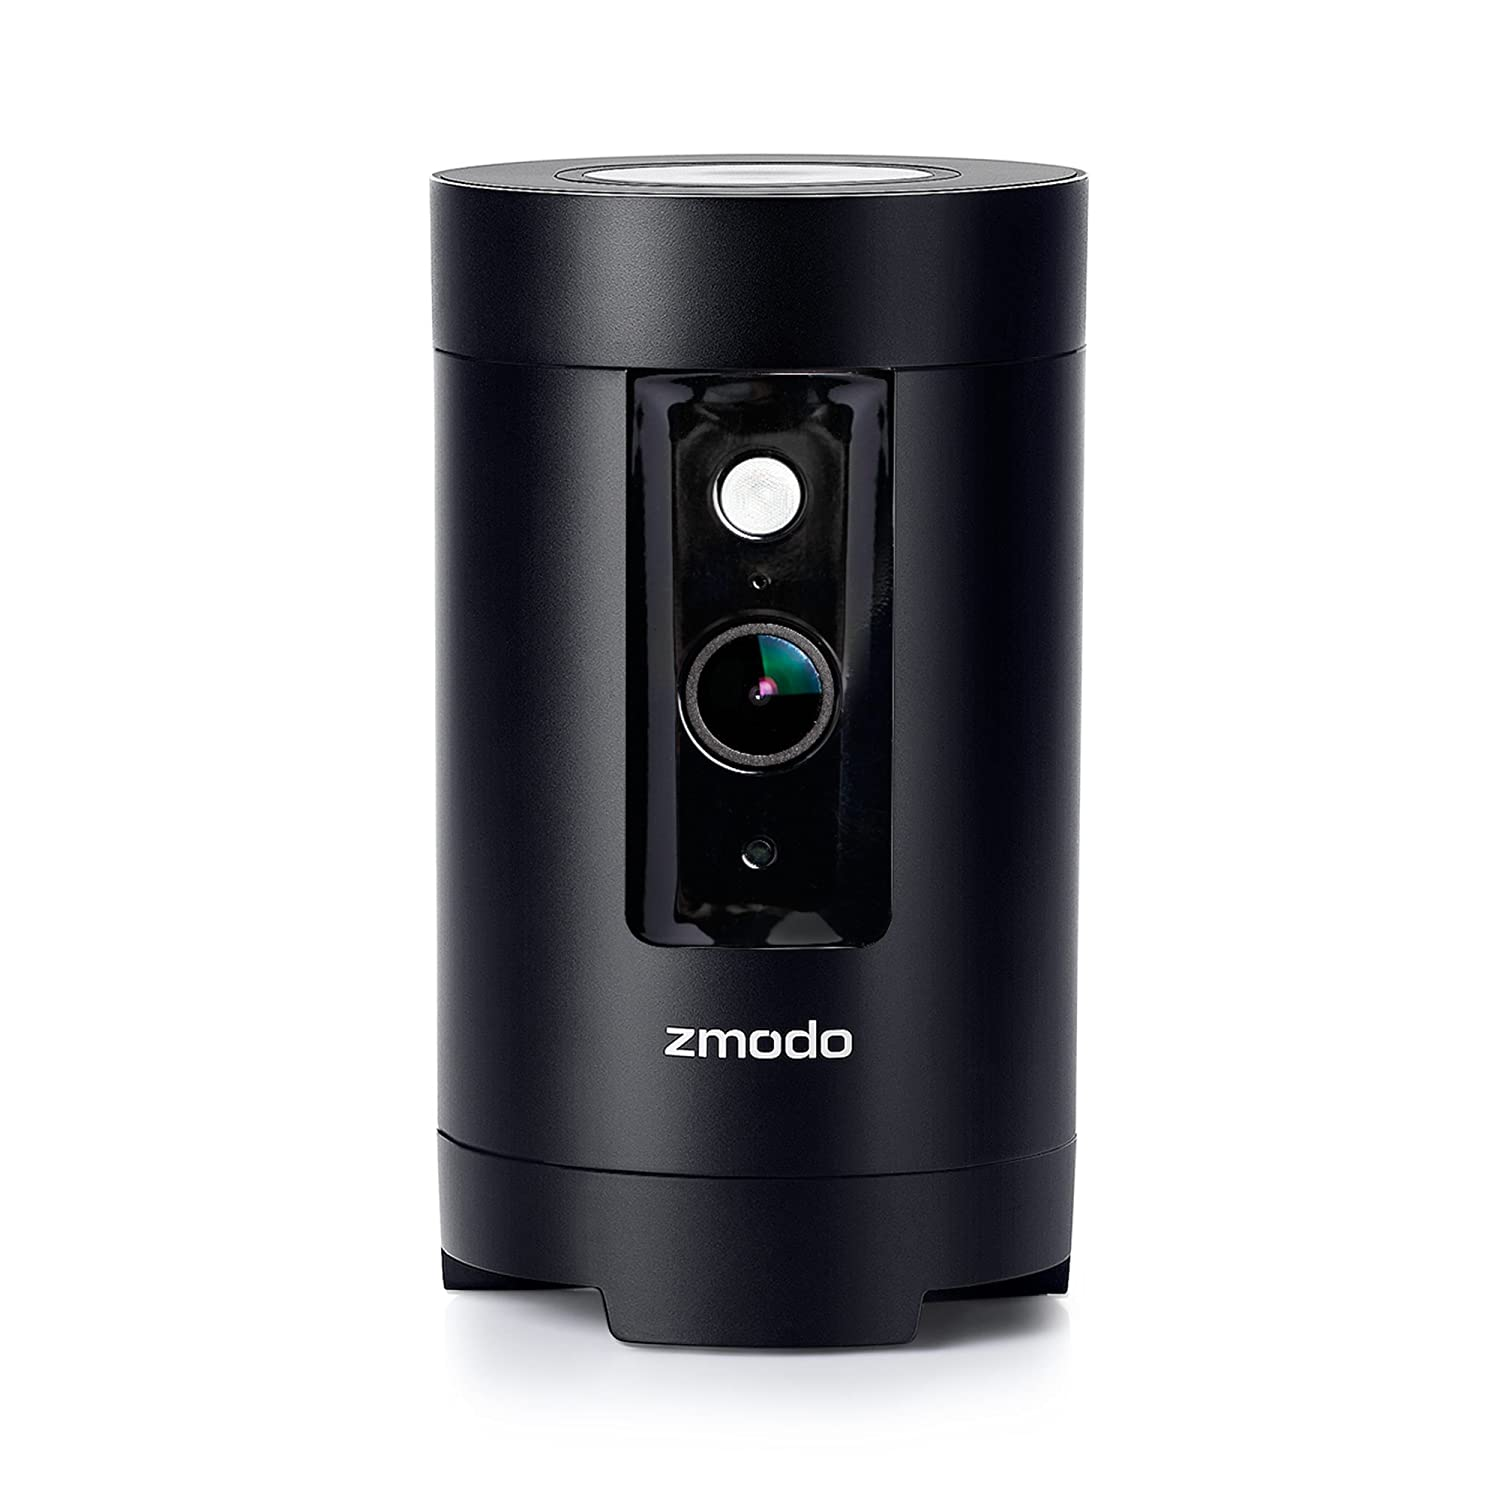 Zmodo Pivot 1080p Wireless Security Camera and All-in-One Smart Home Hub